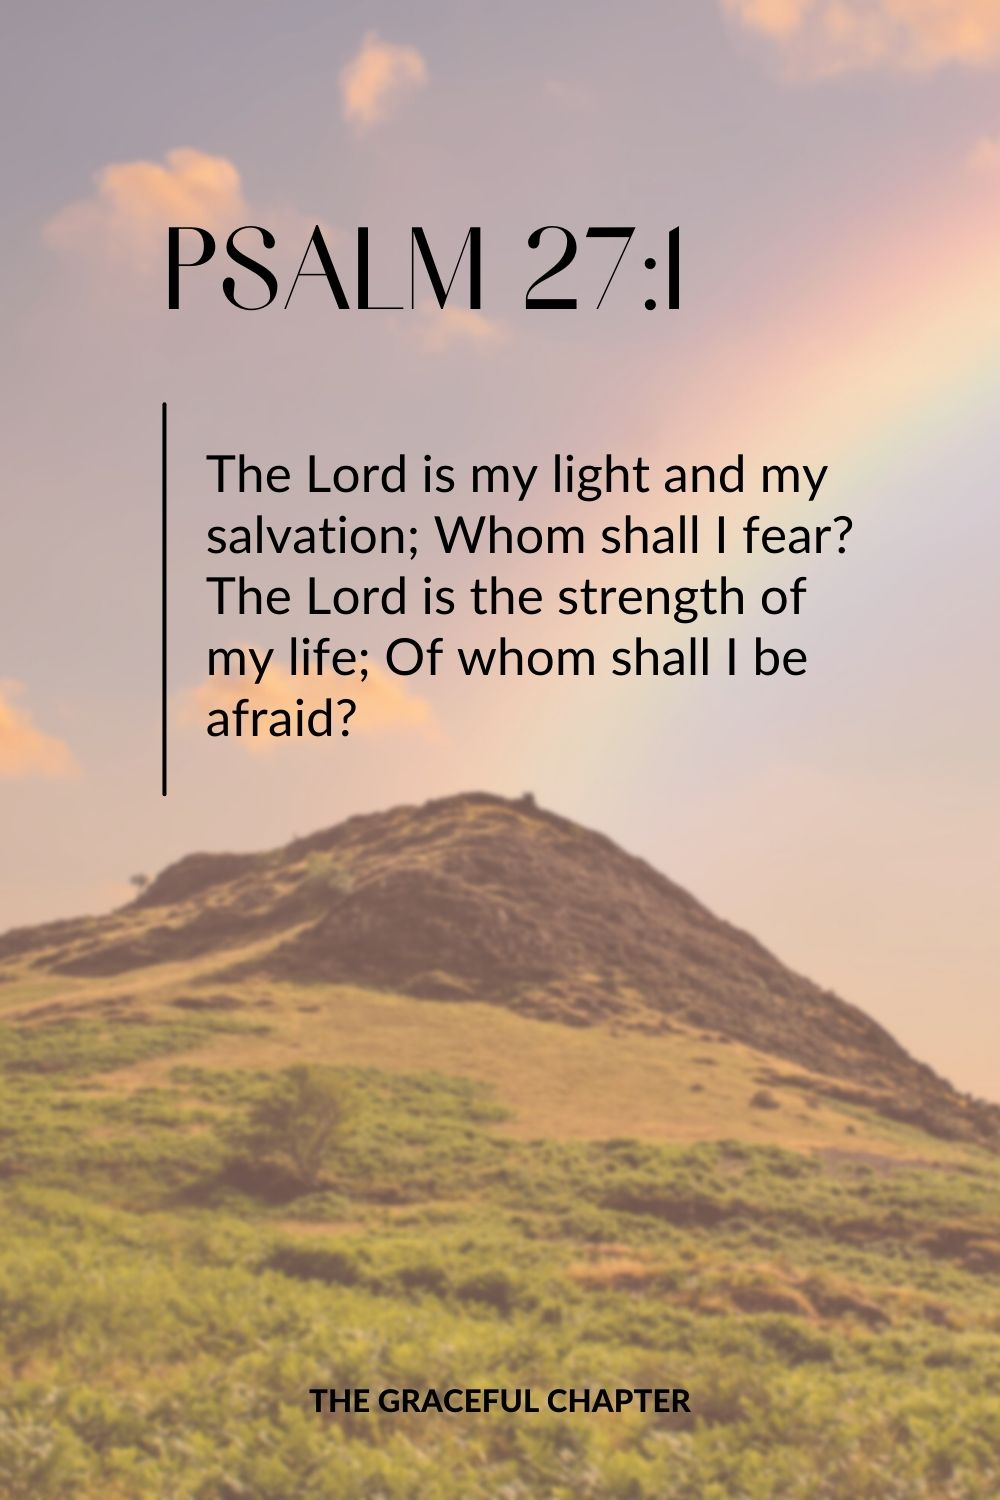 The Lord is my light and my salvation; Whom shall I fear? The Lord is the strength of my life; Of whom shall I be afraid? Psalm 27:1